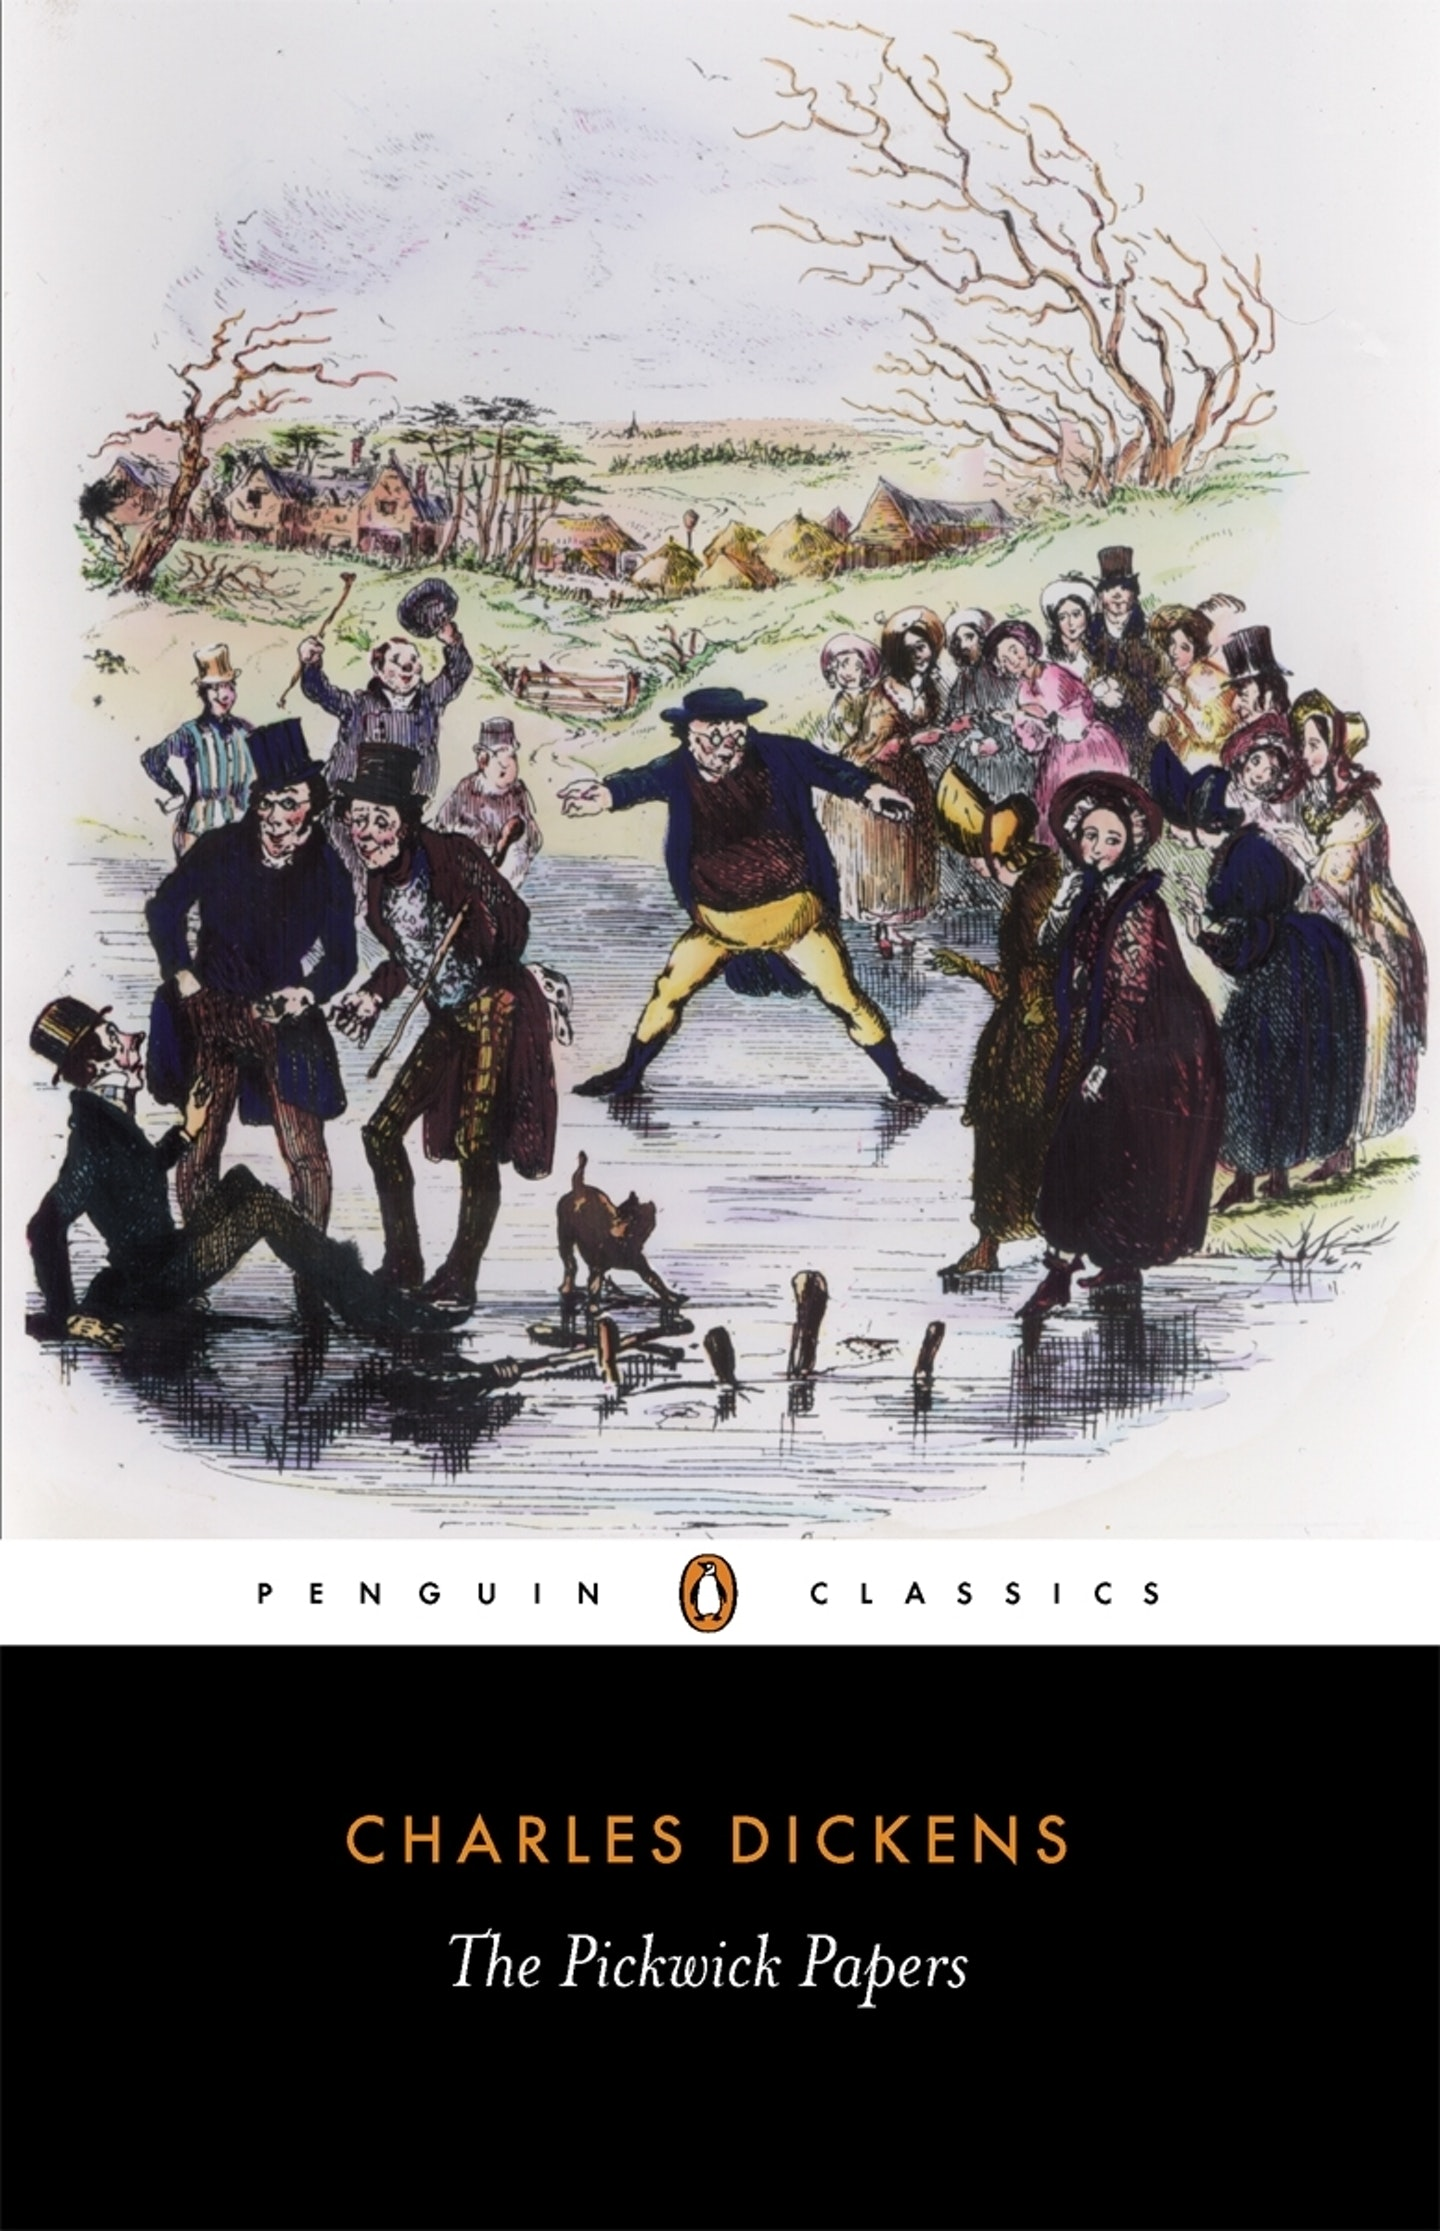 the early literary influence of charles dickens Though dickens was born too late to meet fielding, his predecessor had a profound impact on dickens' work henry fielding (april 22, 1707-oct 8, 1754) began his literary career due to financial distress at the time writing plays could be quite lucrative, so fielding turned his attention to drama his first.